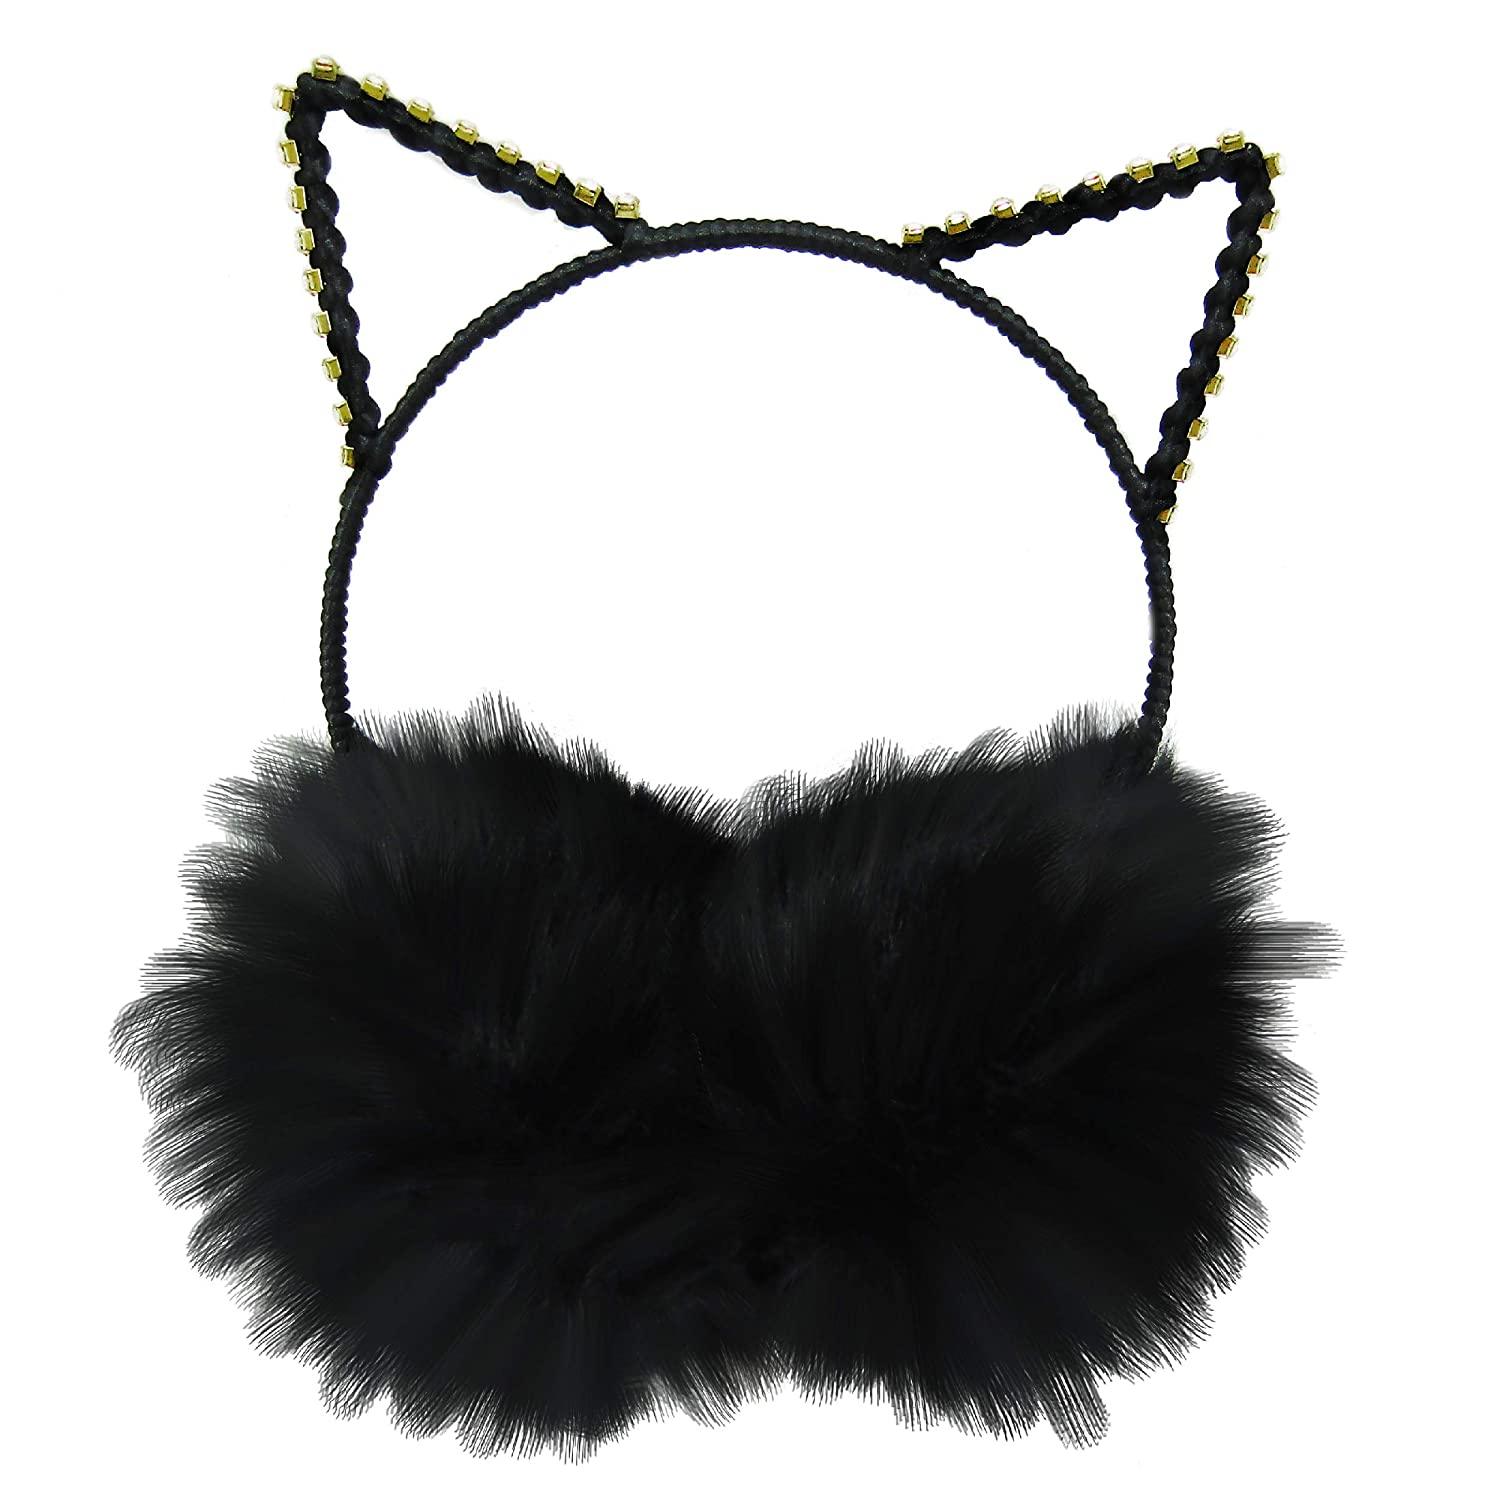 Winter Cat Ears Headband Black Cat Earmuffs Warm Fuzzy Cold Weather Accessory for Women and Girls XS Accessories 314786A-87